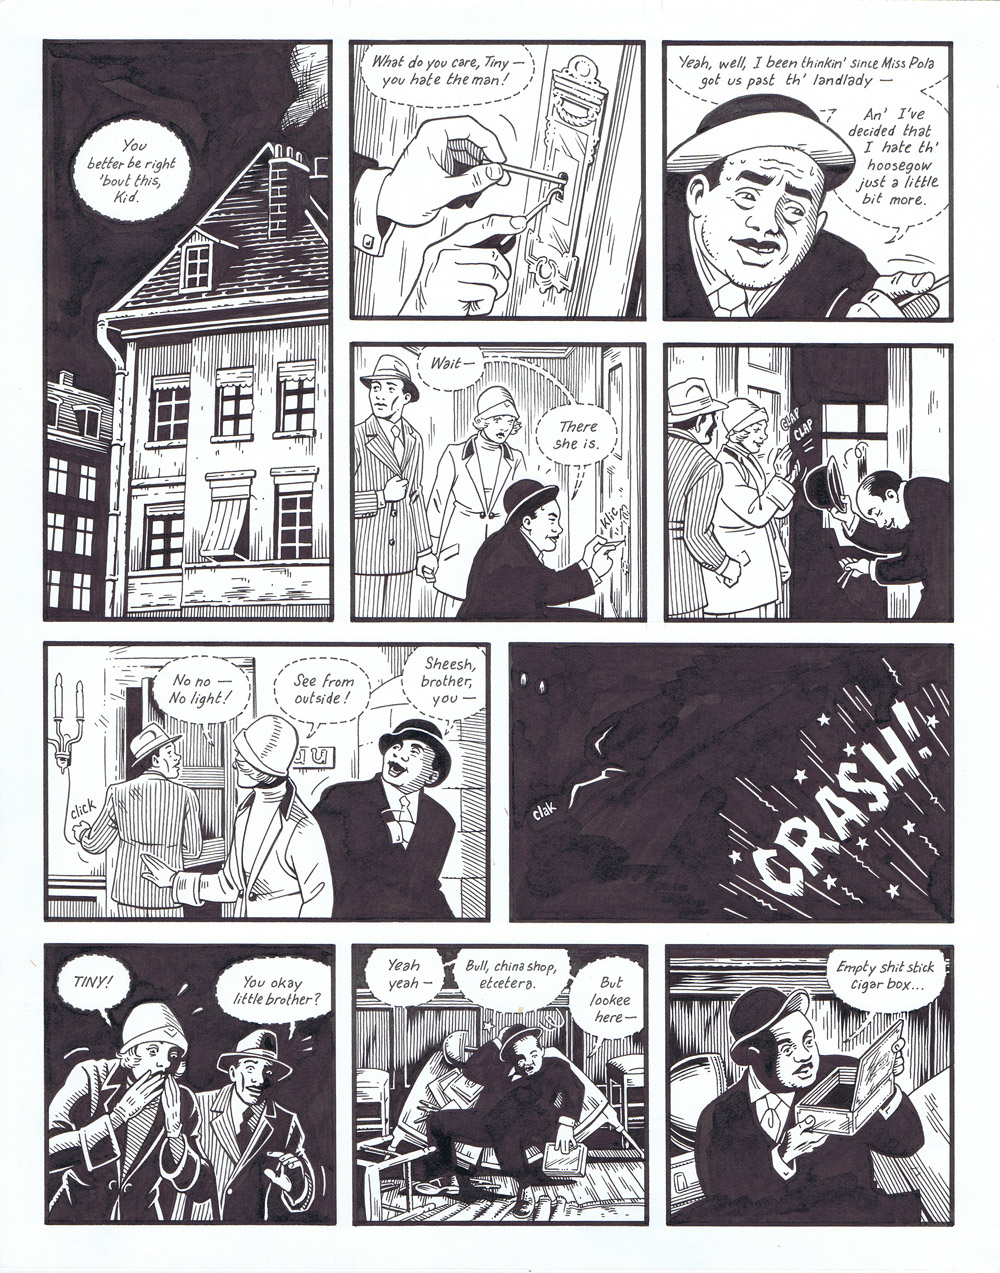 Berlin: Book 2 - page 196